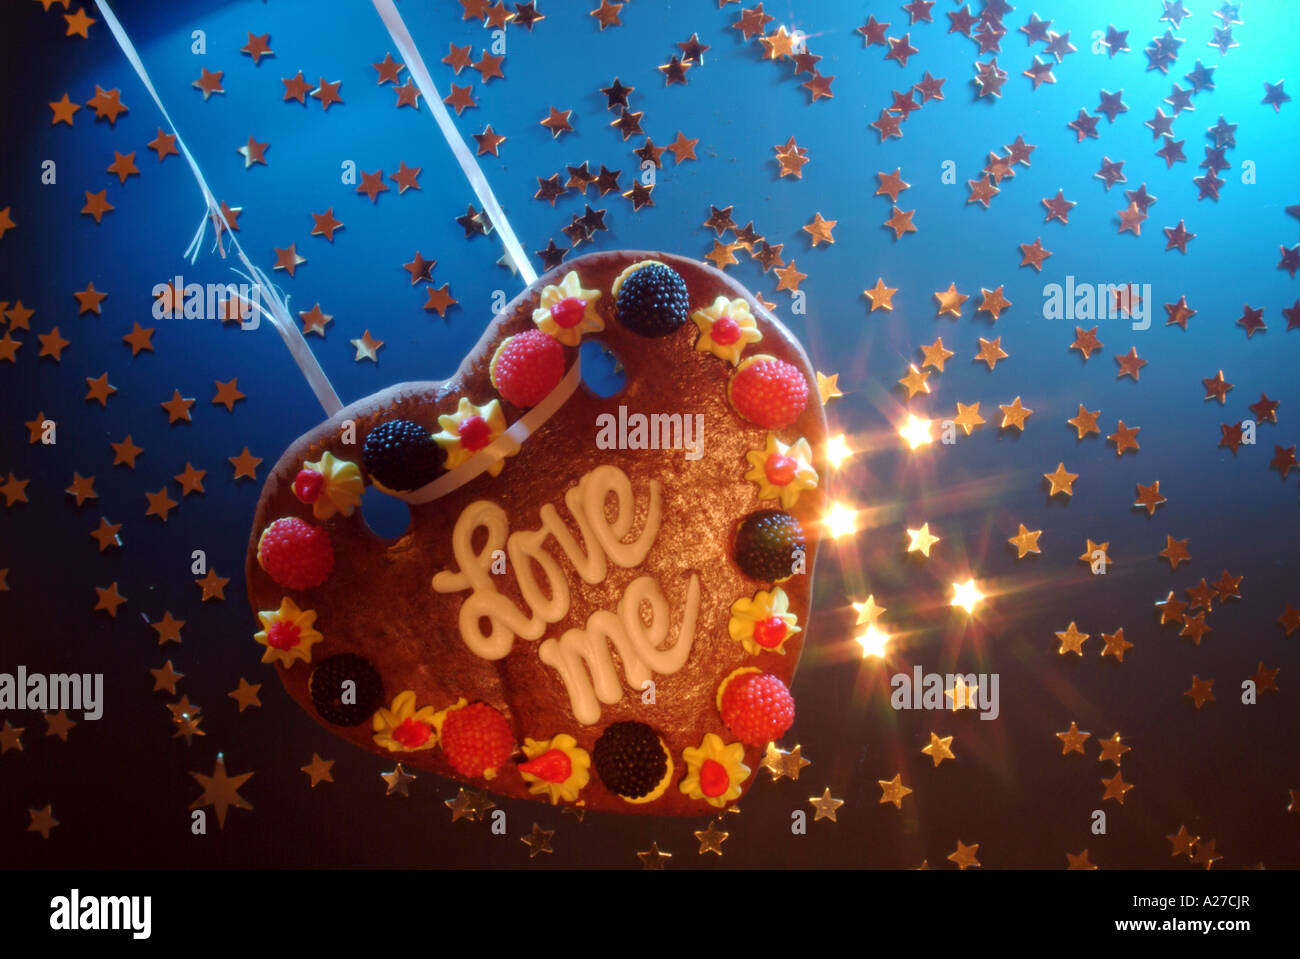 Love heart made of honey cake swinging on a broken string in stars - Stock Image